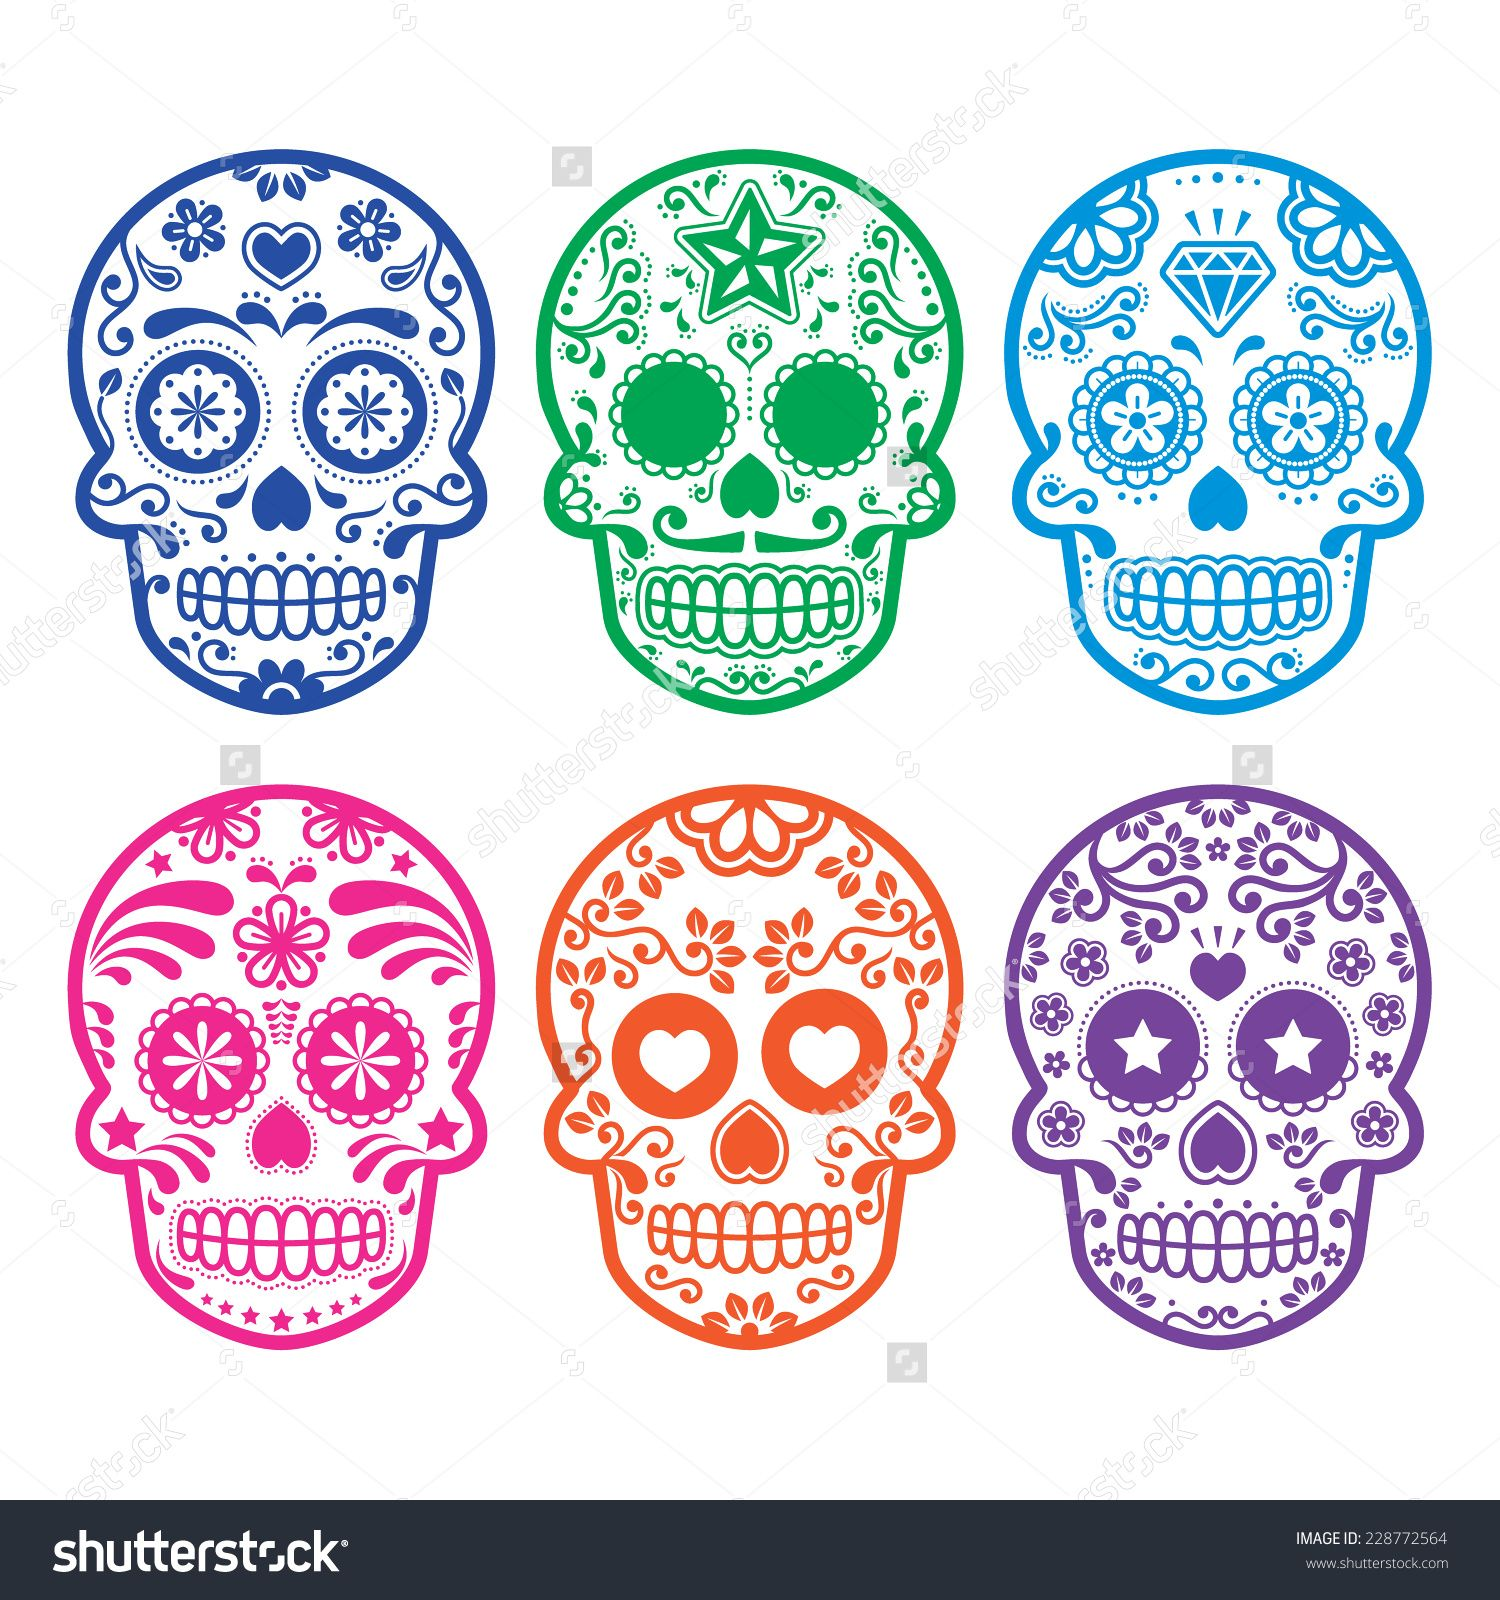 Mexican Sugar Skull, Dia De Los Muertos Icons Set Stock Vector Illustration 228772564 : Shutterstock